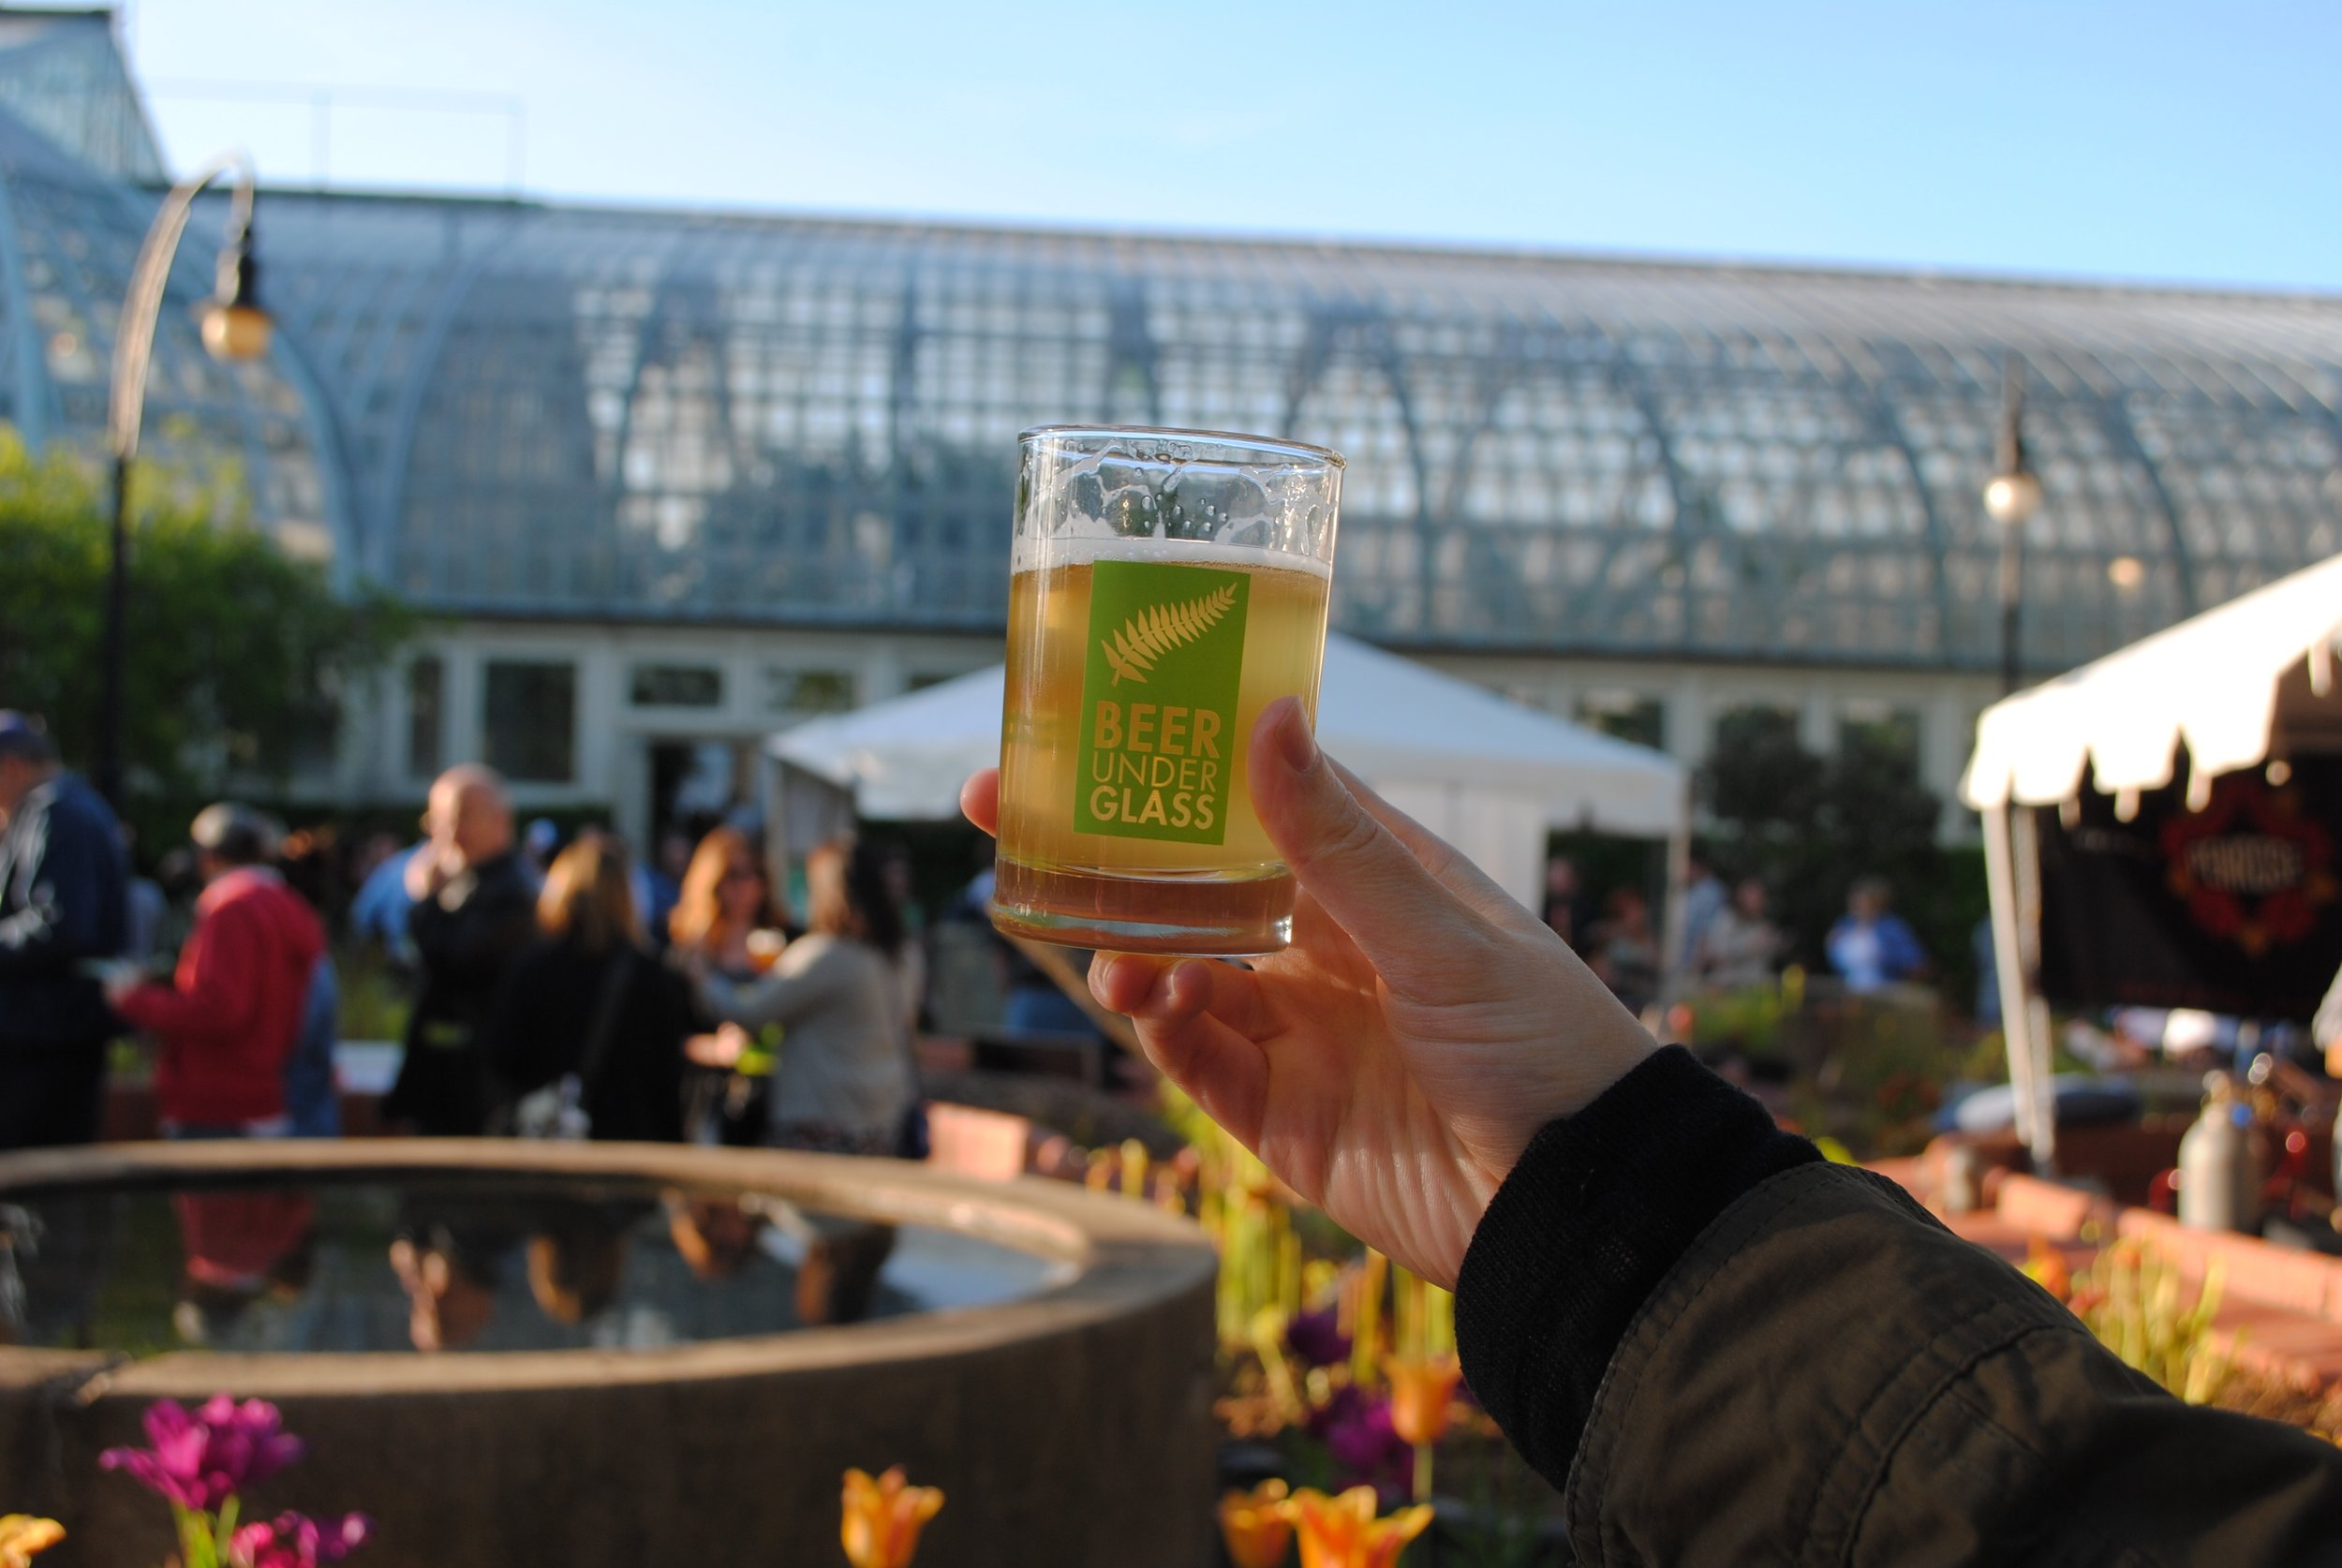 May's 'BUG' had perfect weather, kicking off Chicago Craft Beer Week at Garfield Park Conservatory.